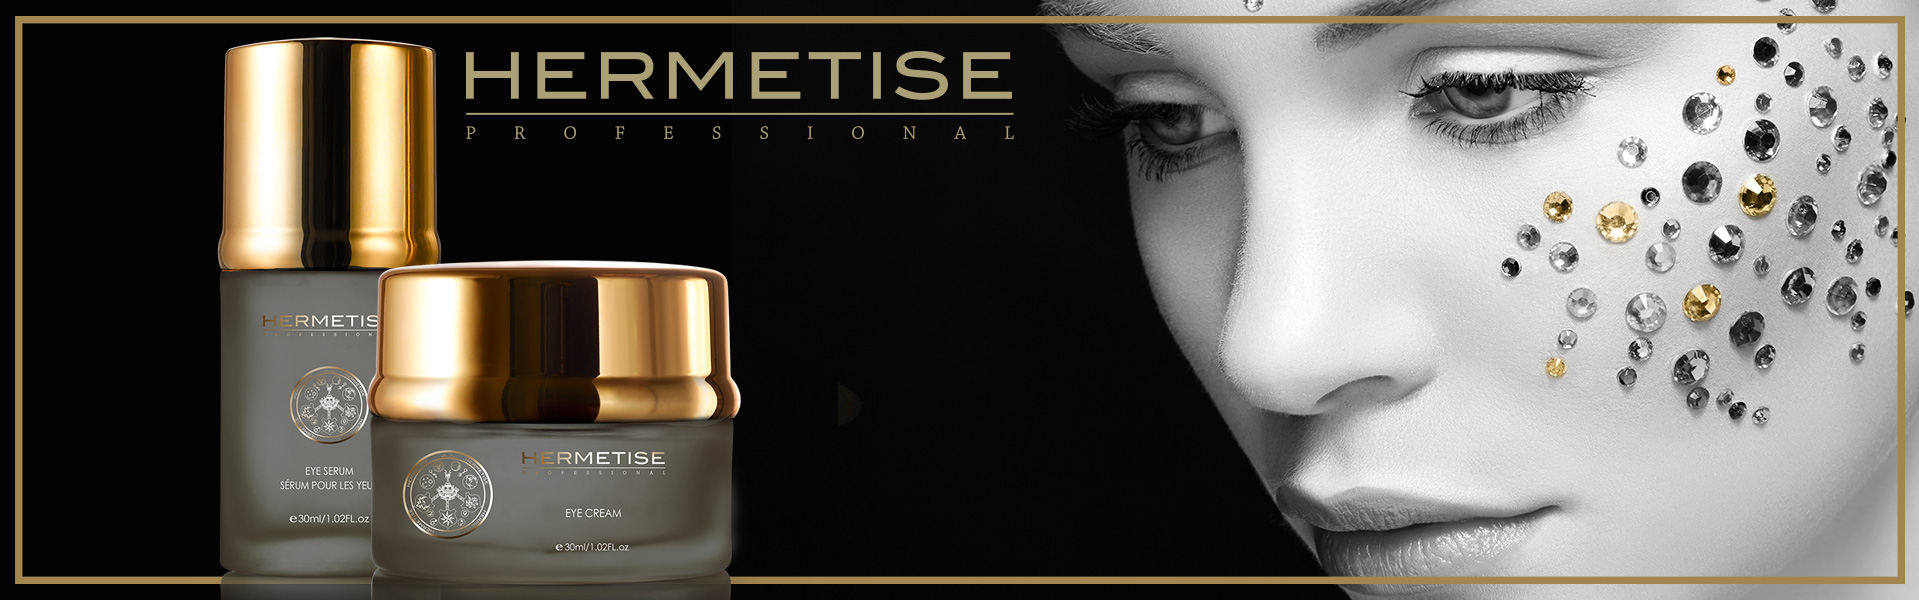 hermetise age defying collection